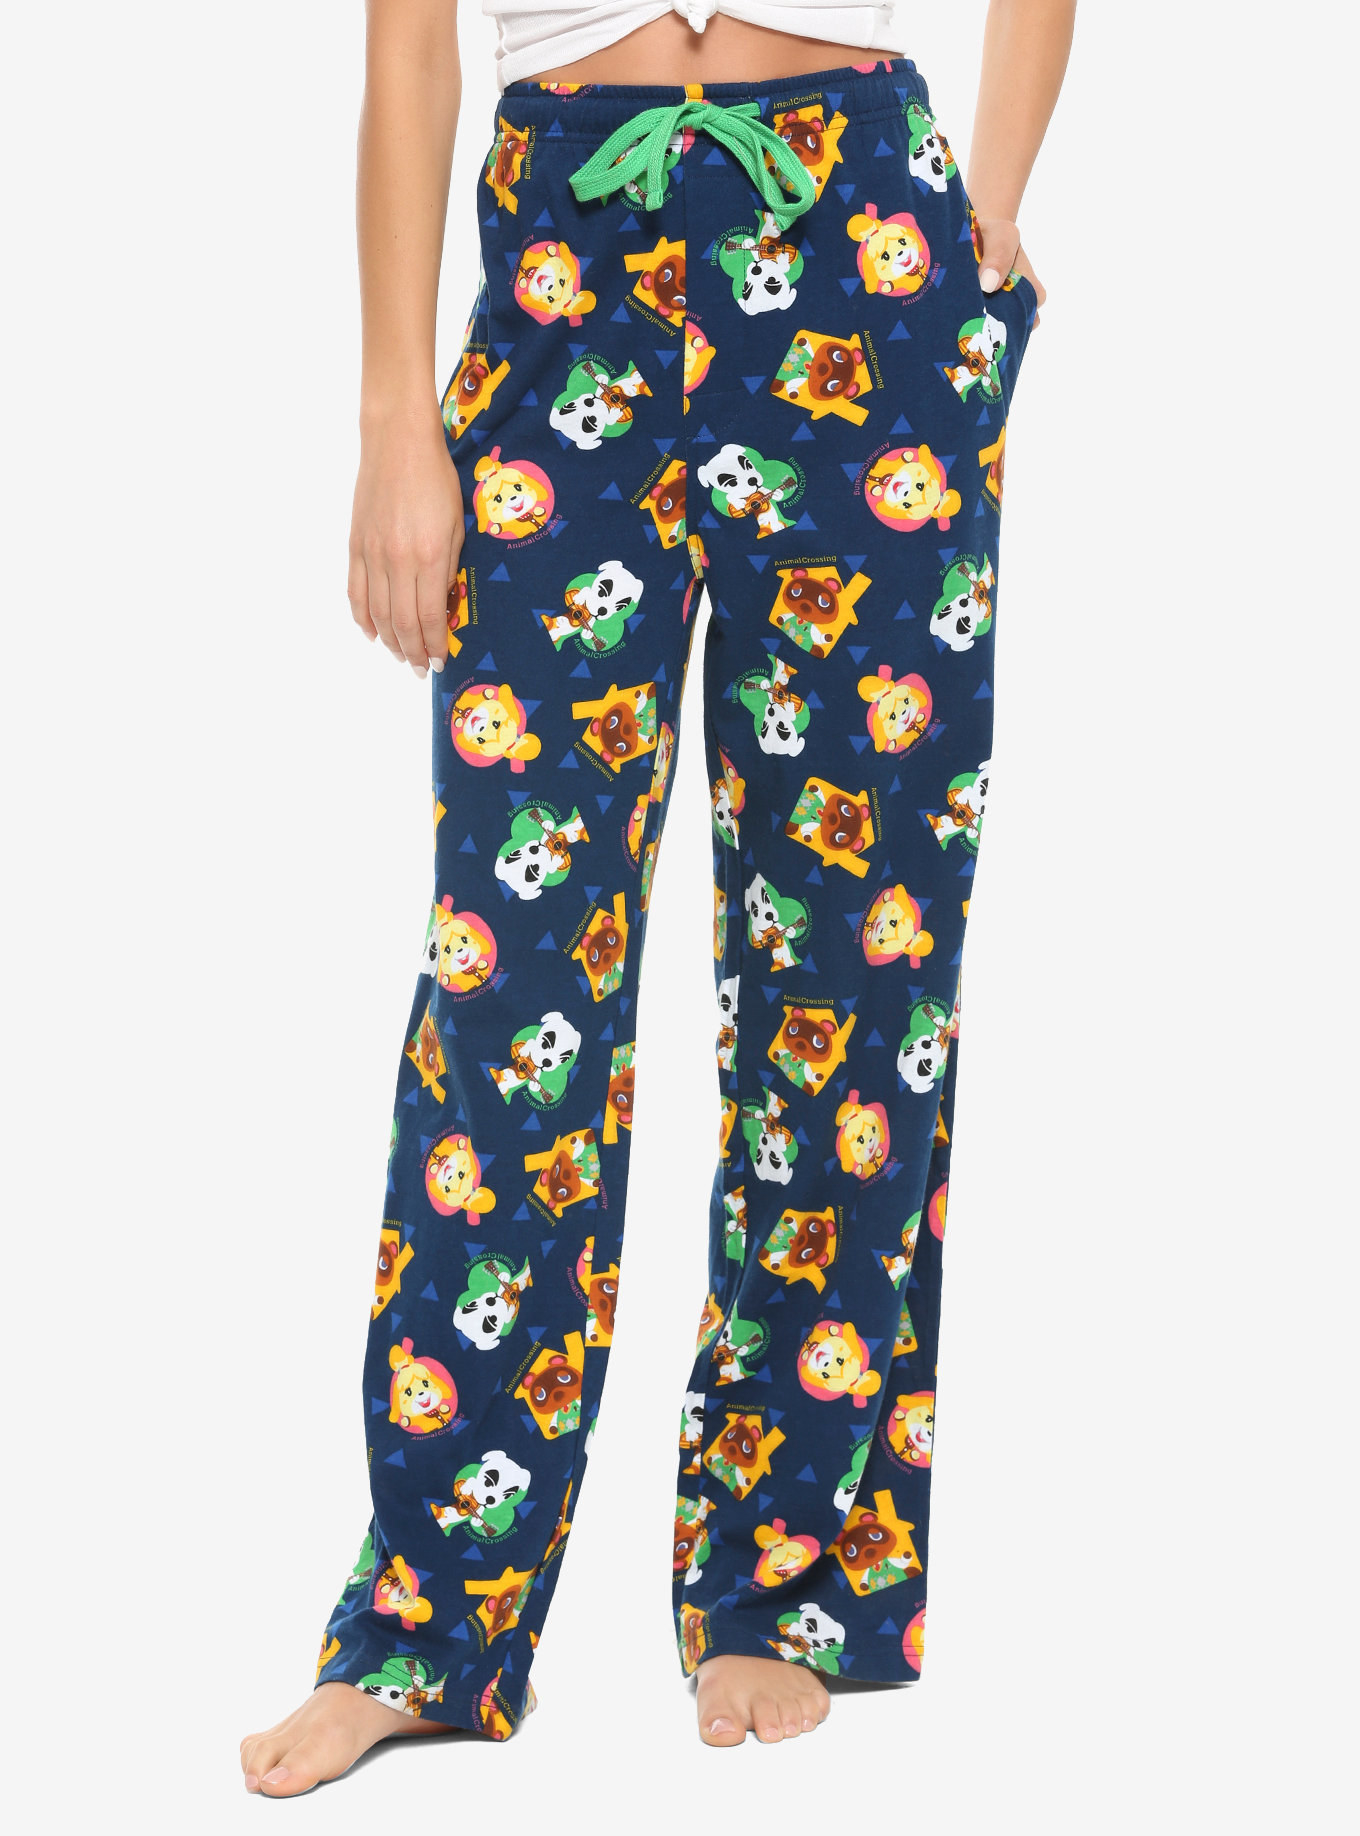 a model wearing blue pajama pants with characters from animal crossing all over them